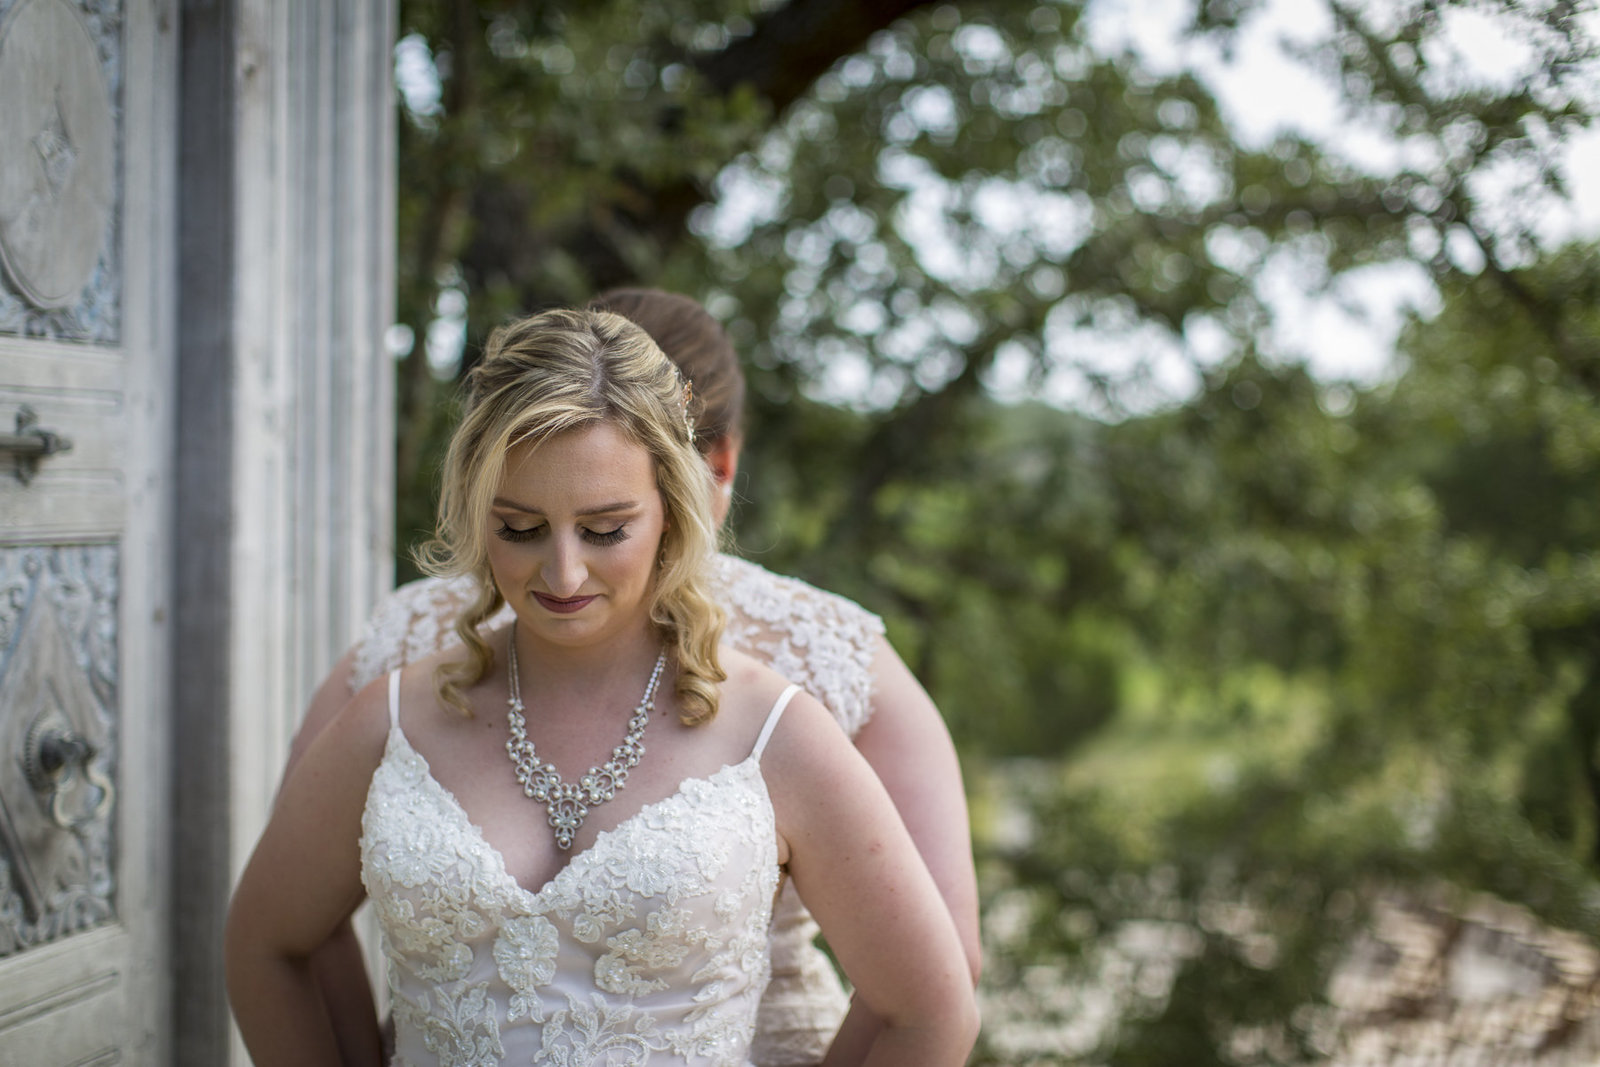 johnson-city-tx=king-river-ranch-rustic-wedding-andrew-morrell-1